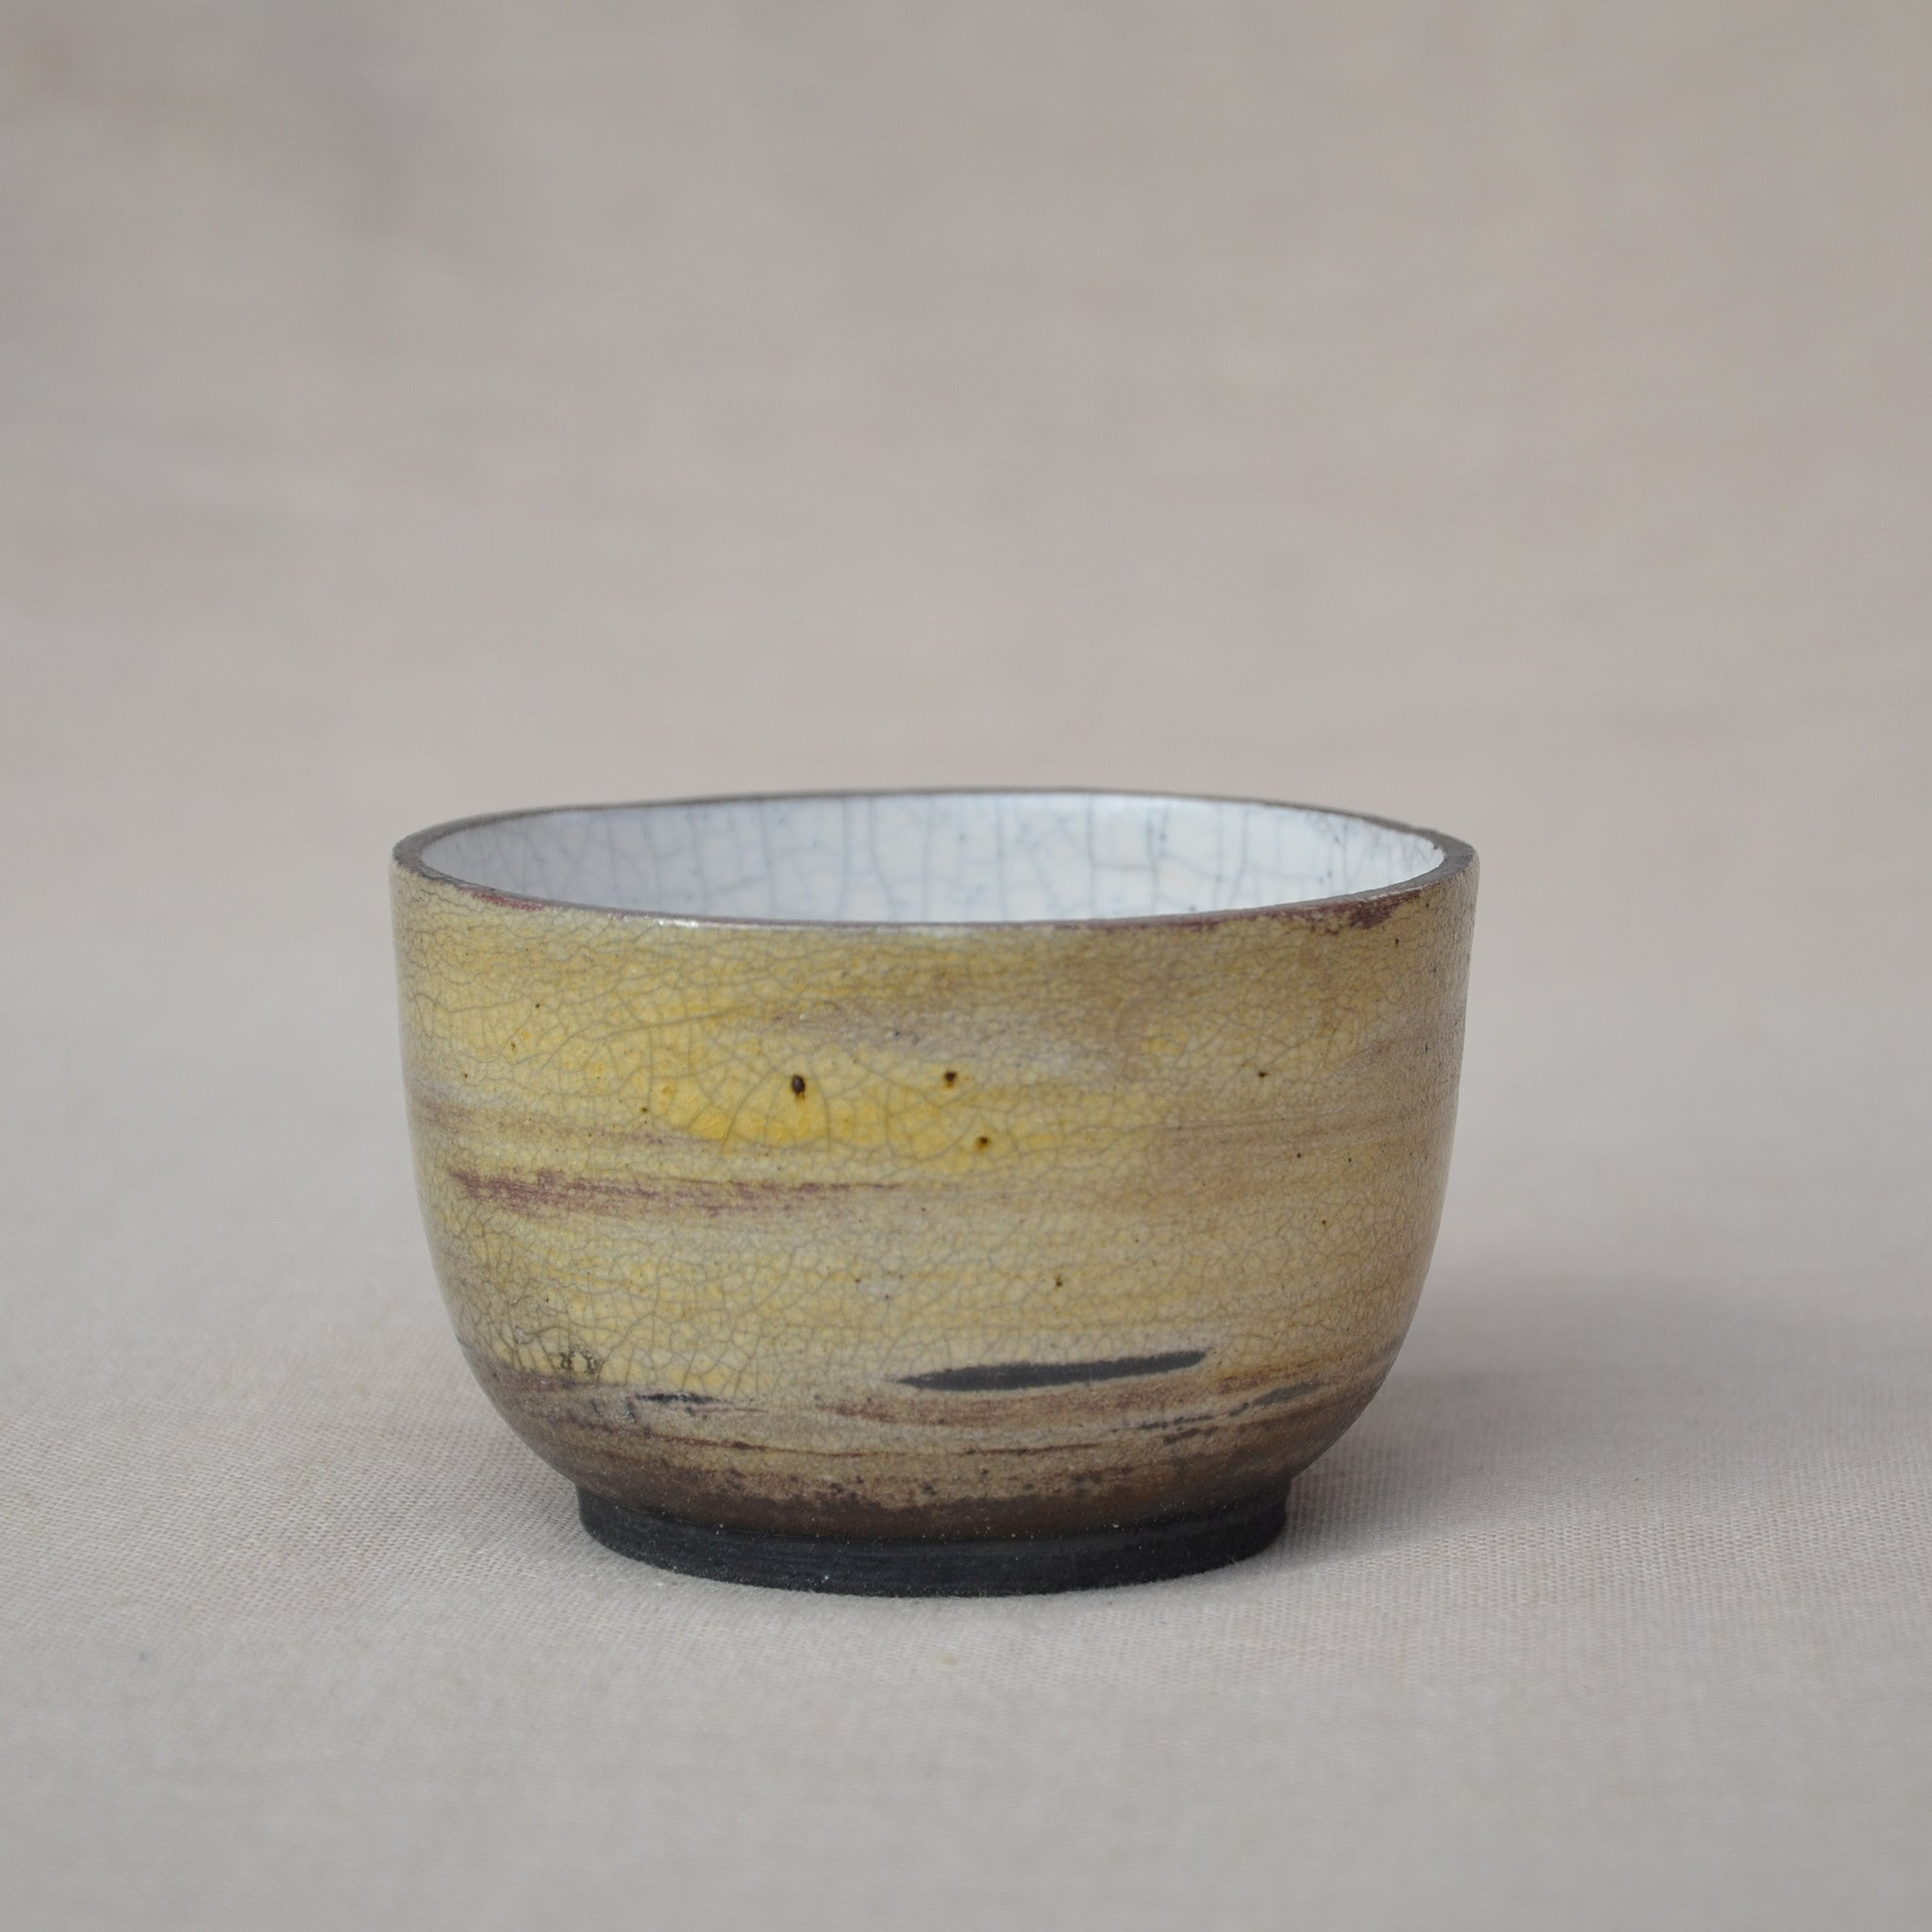 Small bellied Raku bowl